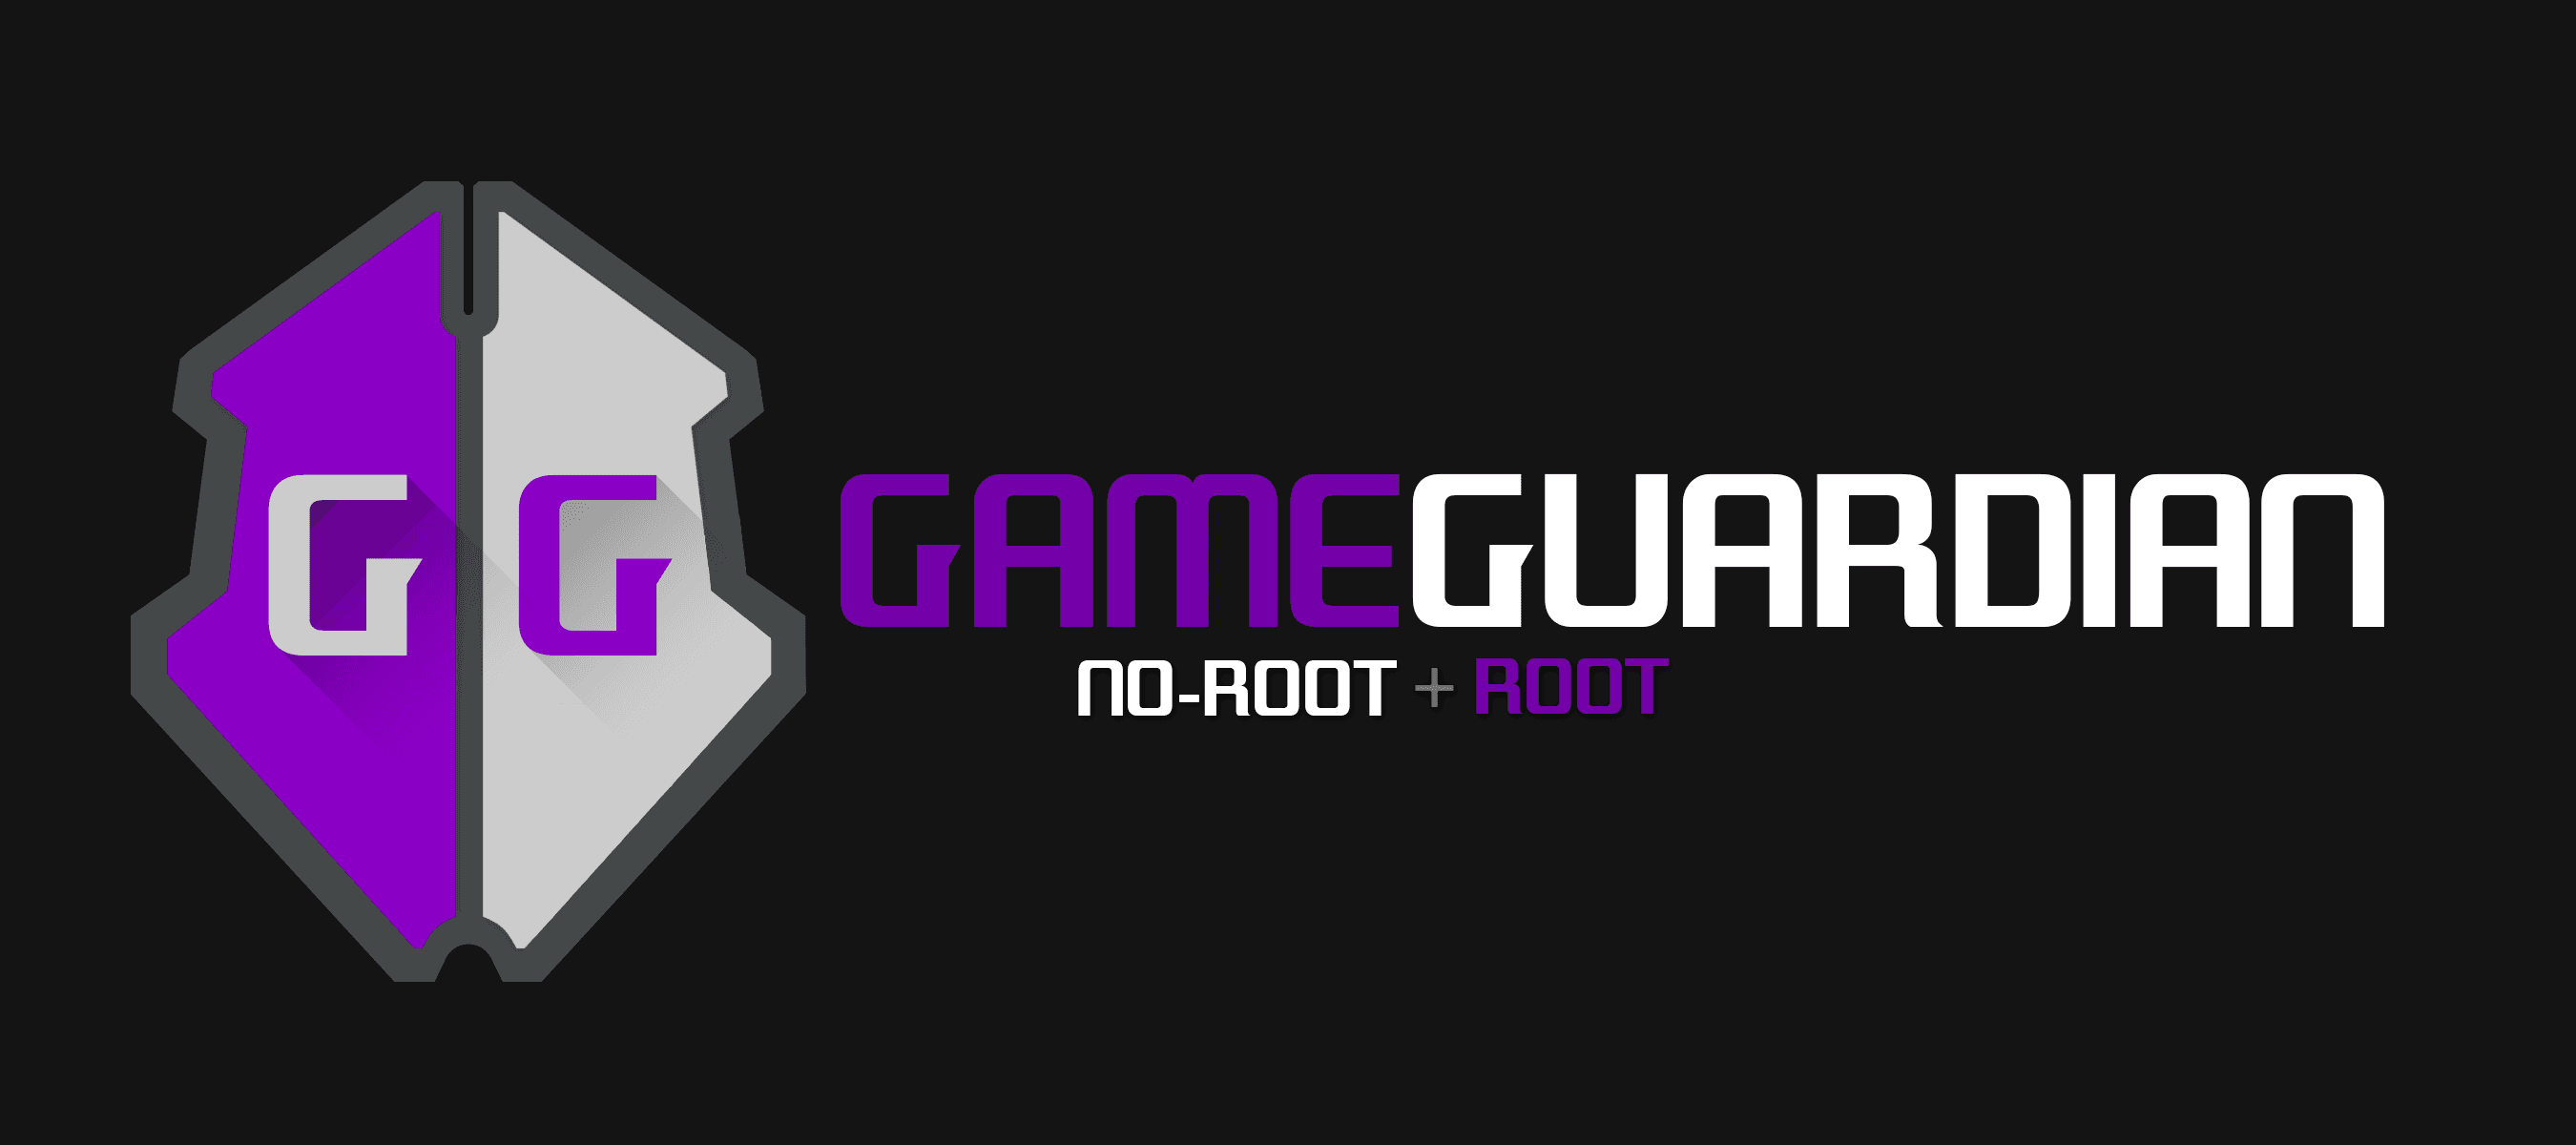 Android 游戲修改器(免root)推薦 - 知乎